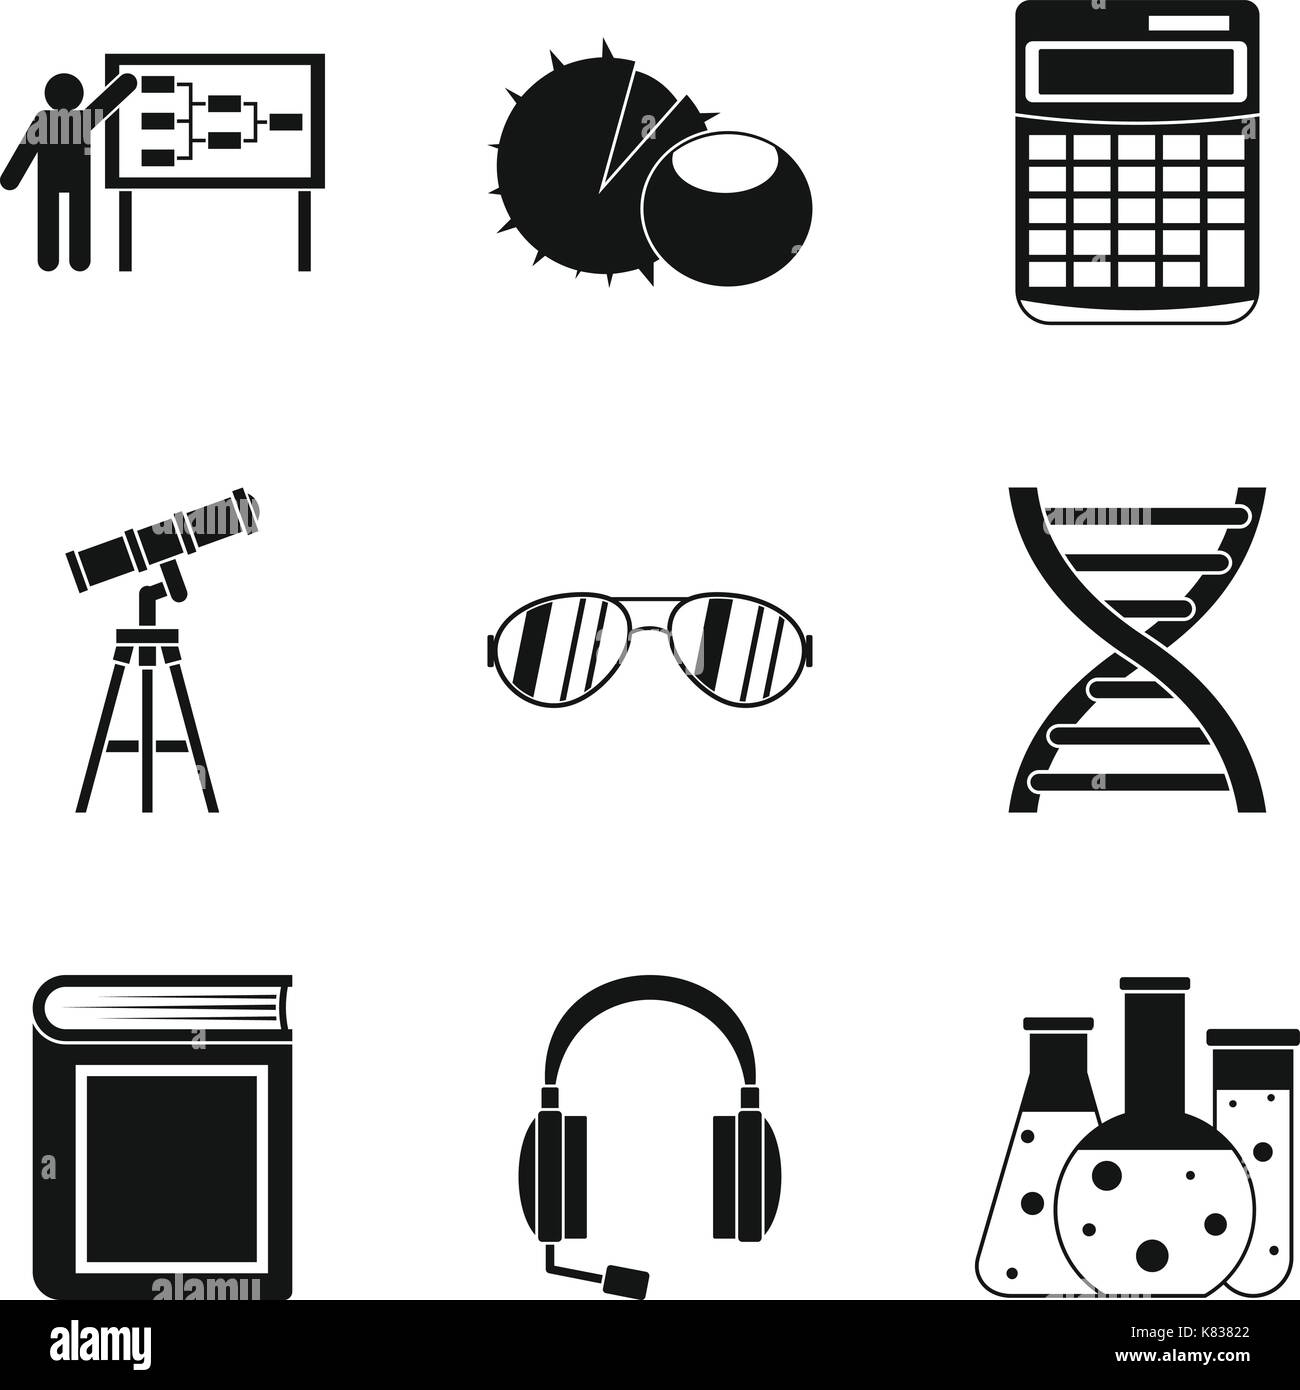 Doctrine icons set, simple style - Stock Vector